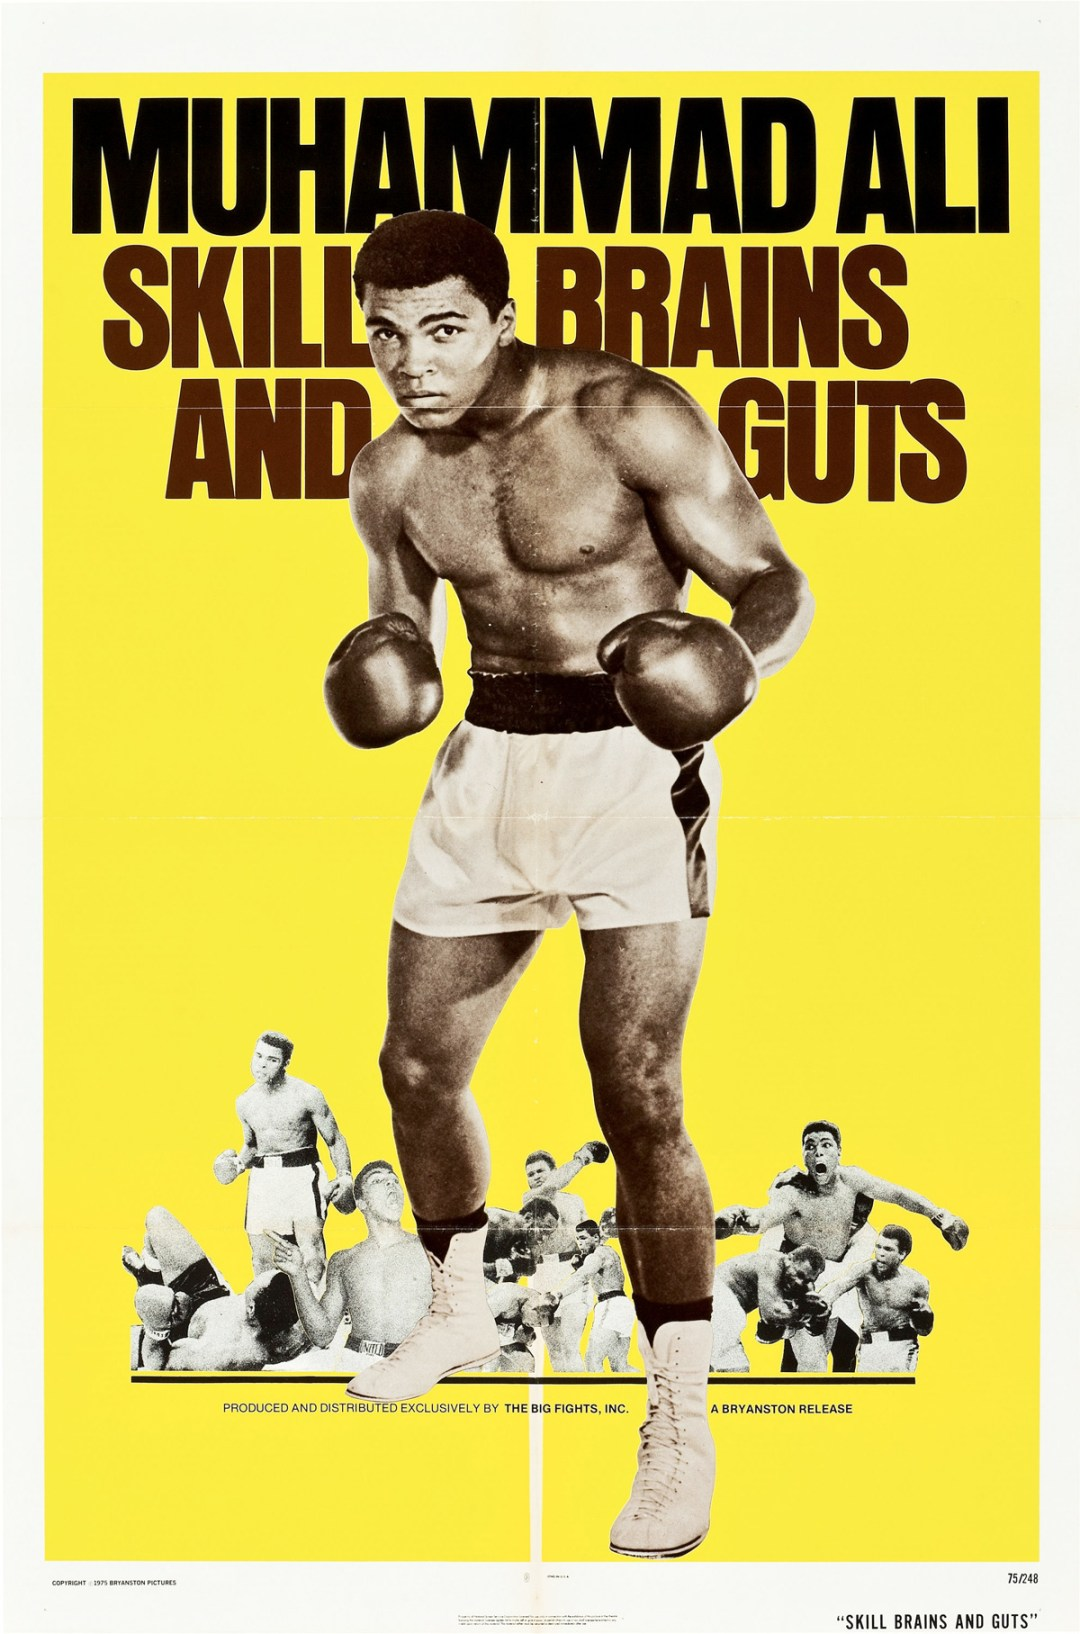 """Skill, Brains and Guts """"Muhammad Ali a.k.a. Cassius Clay"""" :: 1975"""